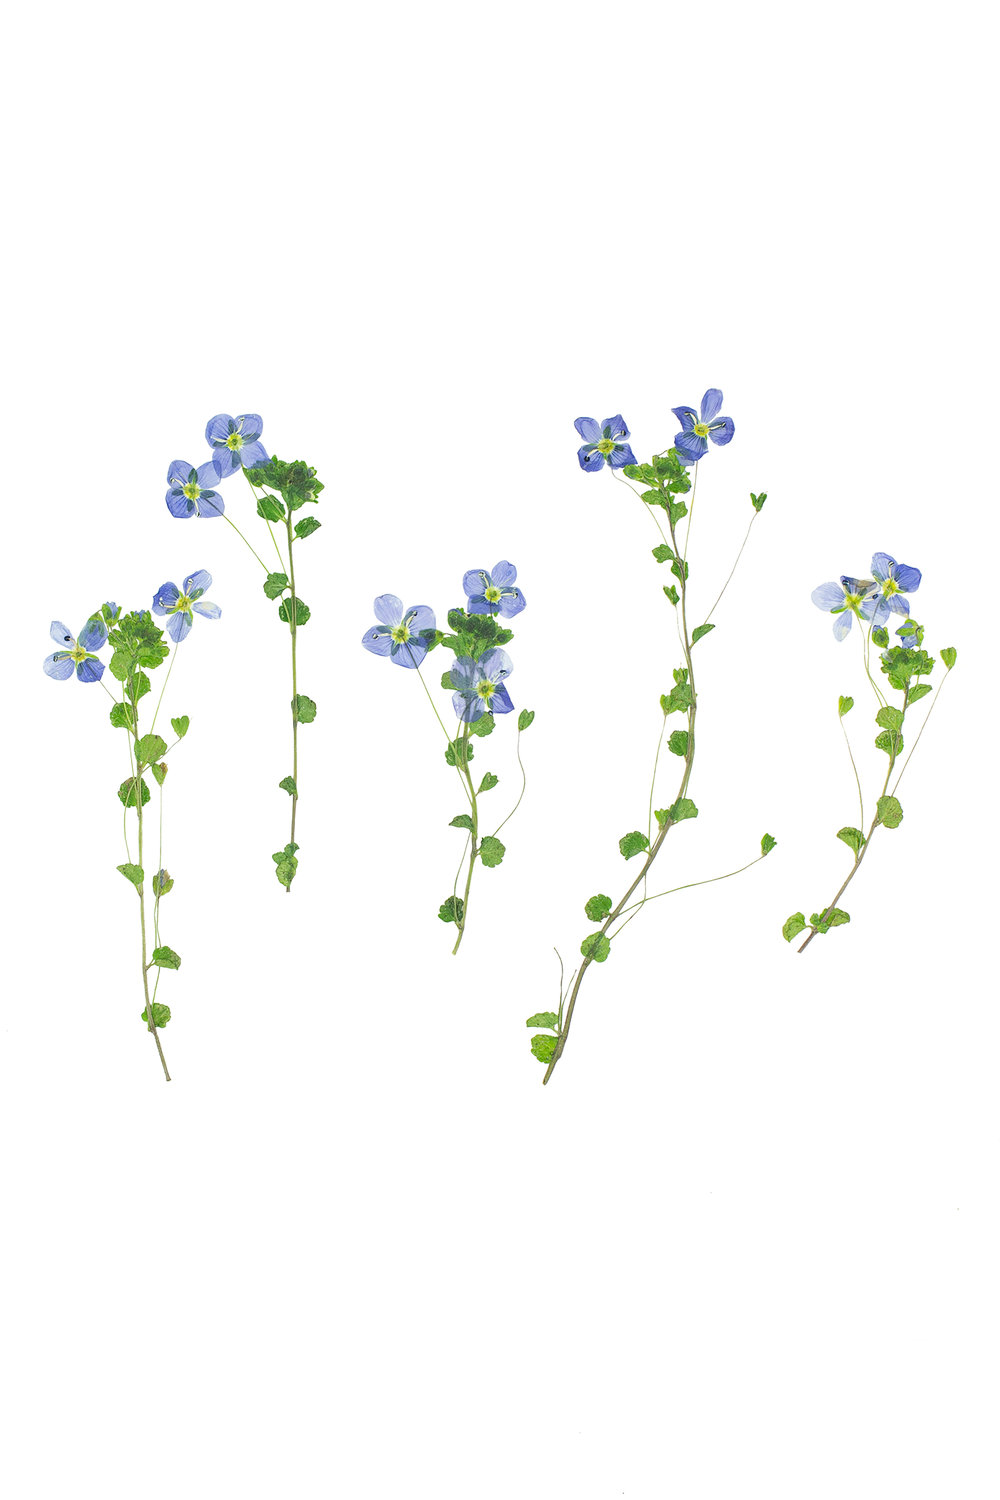 Veronica filiformis / Slender Speedwell